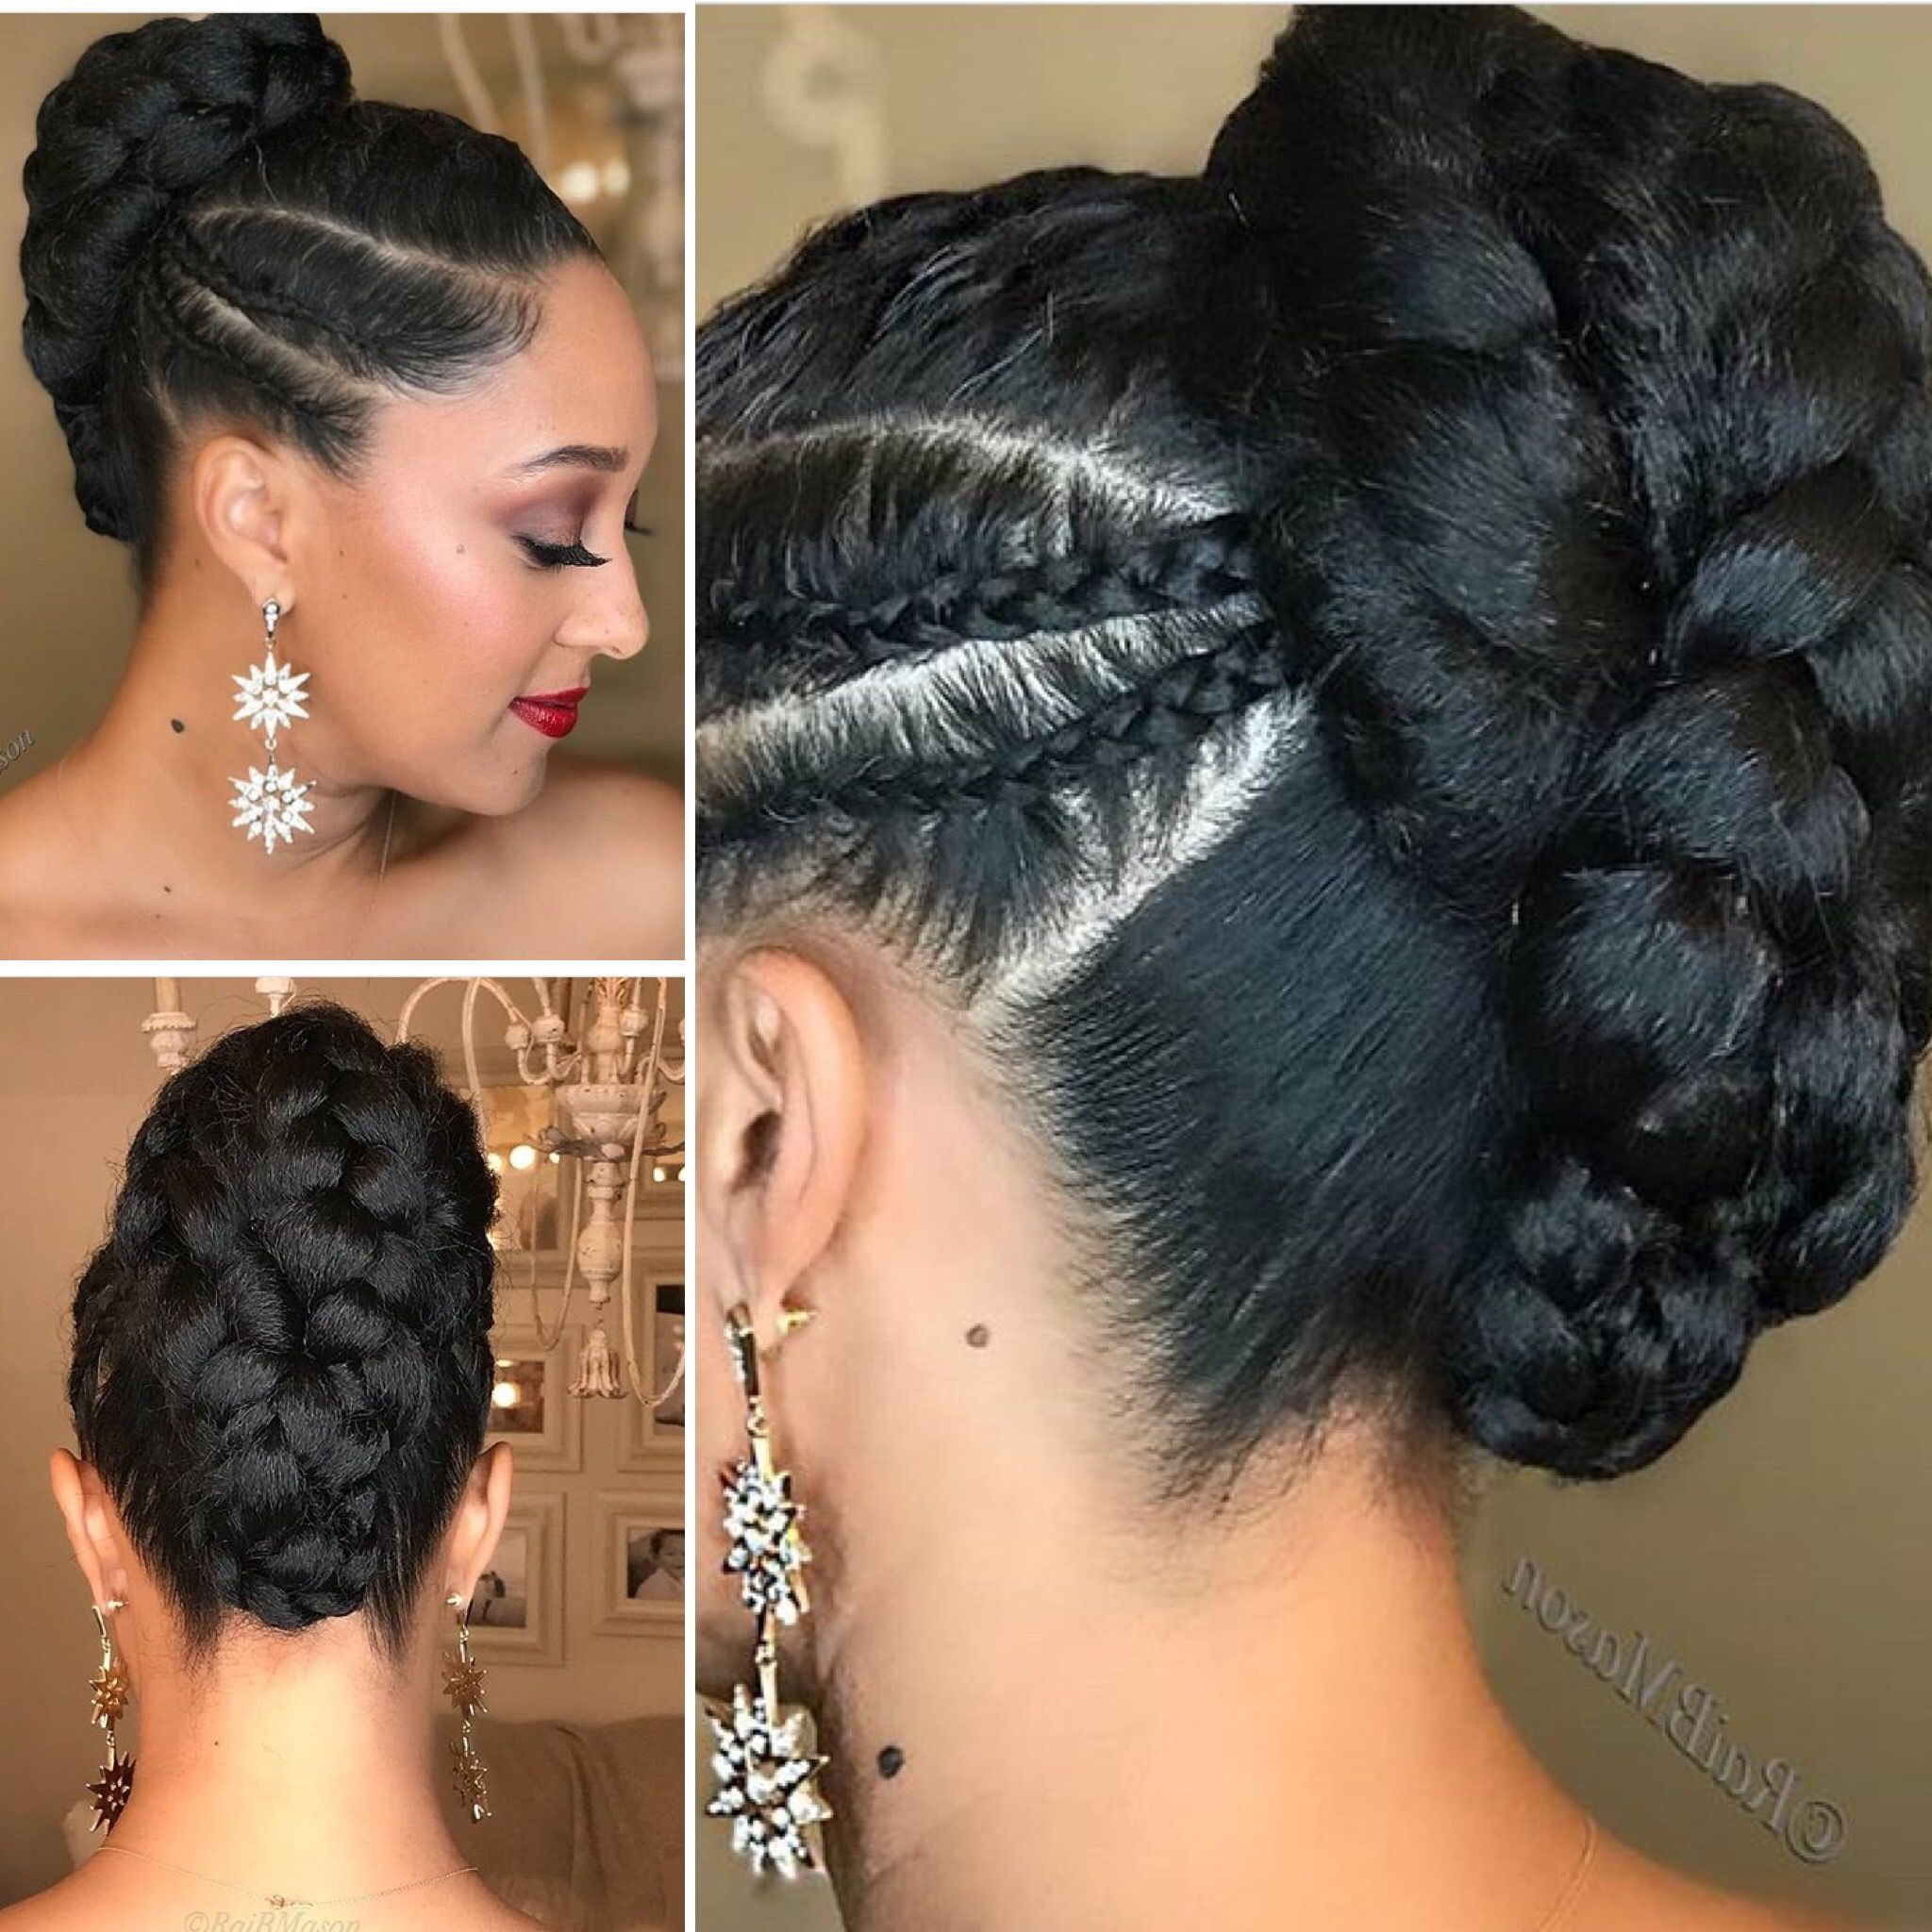 My Vow Renewal Hair Style Natural Hair Updo Hair Updos Natural